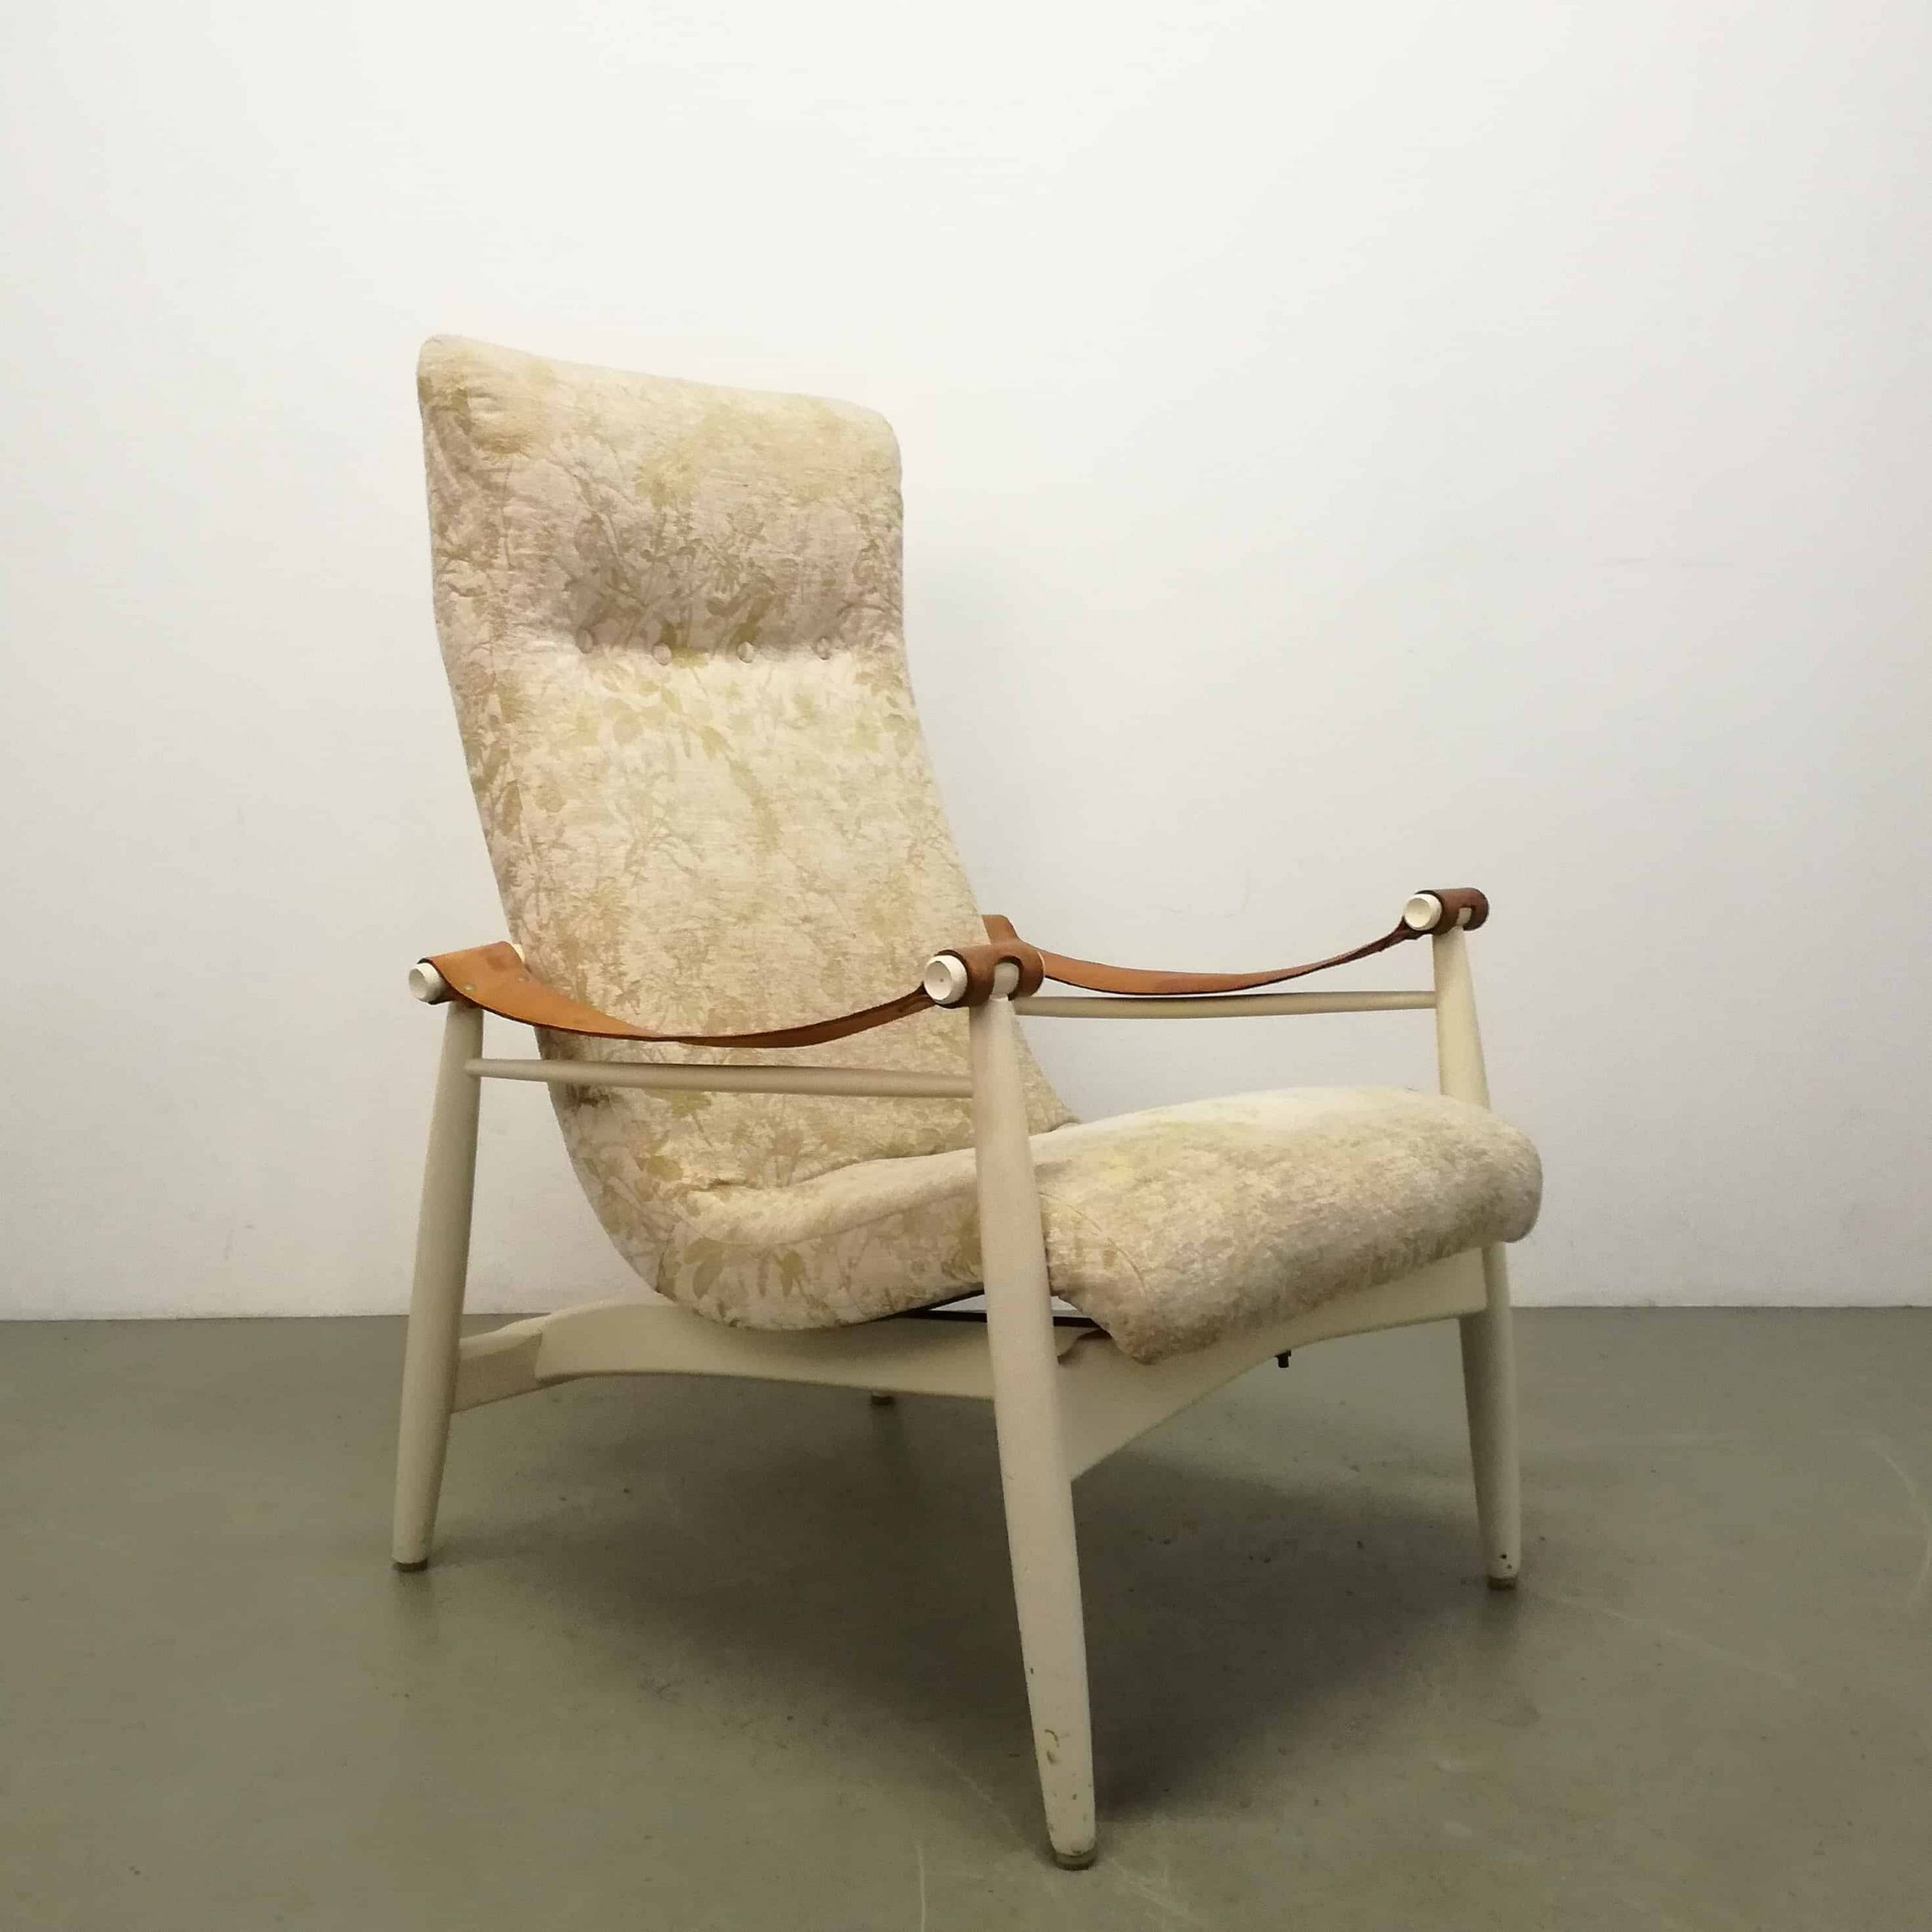 椅子-アームチェア-pj-マンテンダム-gebroeders-jonkers-mid-century-dutch-years-60-1960-wood-leather